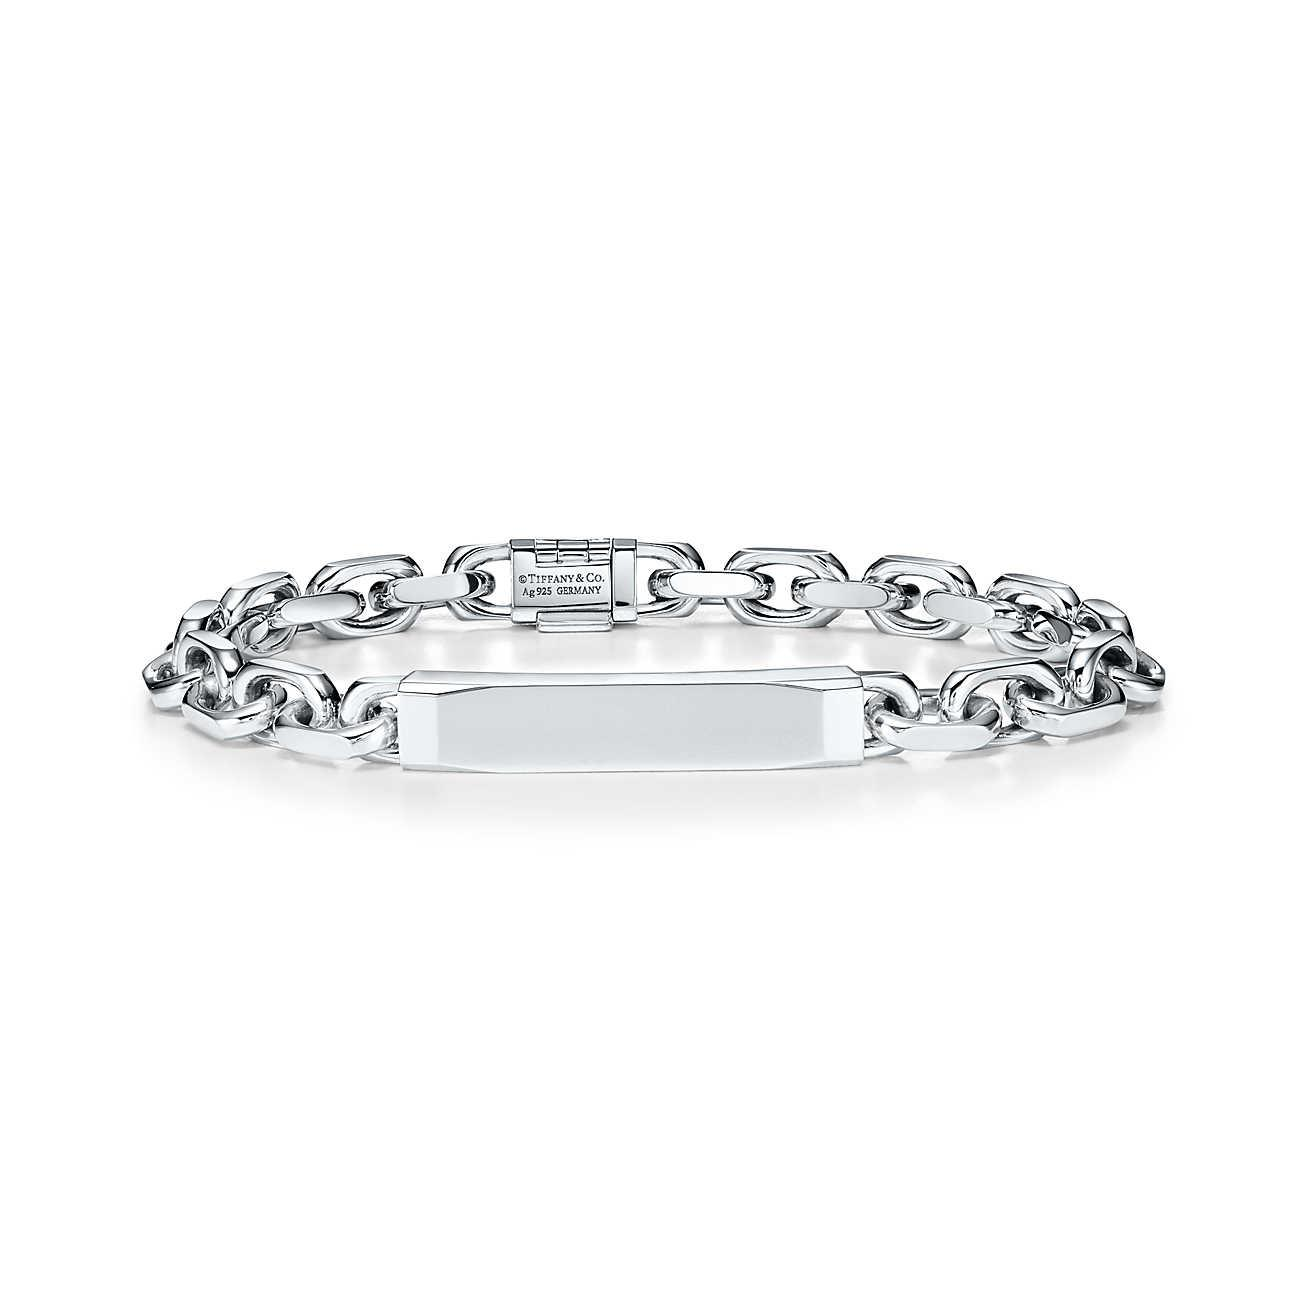 Tiffany 1837® Makers ID chain bracelet in sterling silver, medium